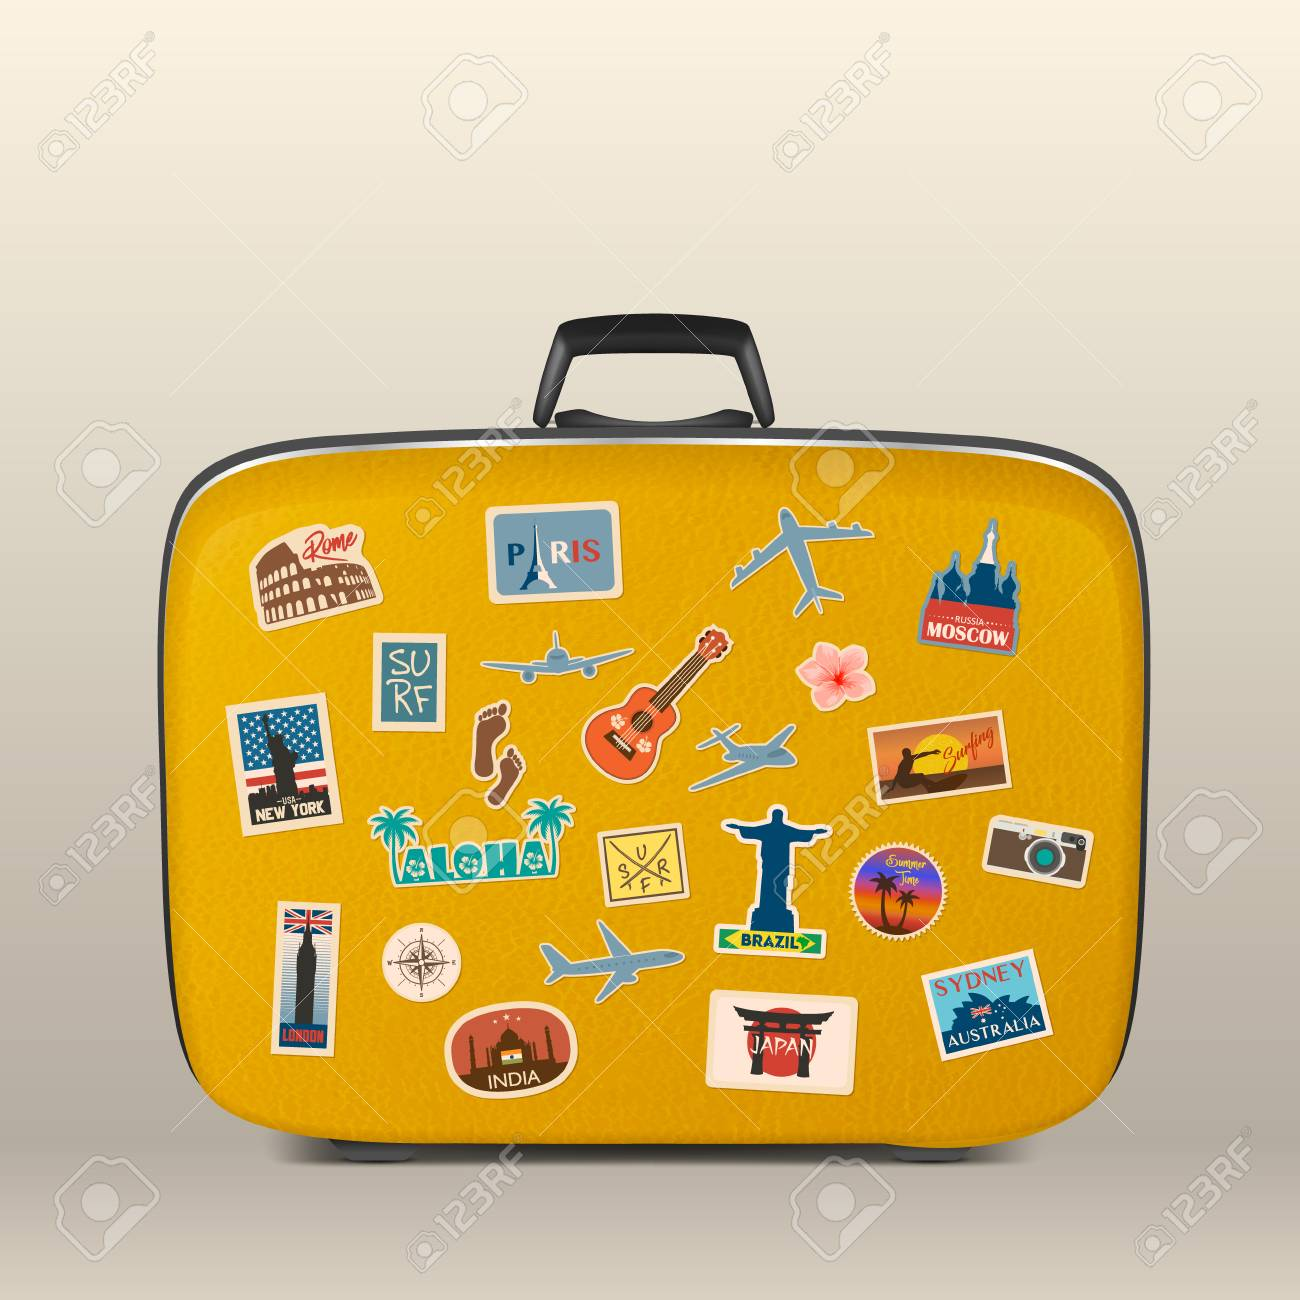 Vector travel stickers, labels with famous countries, cities, monuments and symbols on suitcase in retro vintage style isolated on white. Includes Italy, France, Russia, USA, England, India, Japan etc. - 92641887